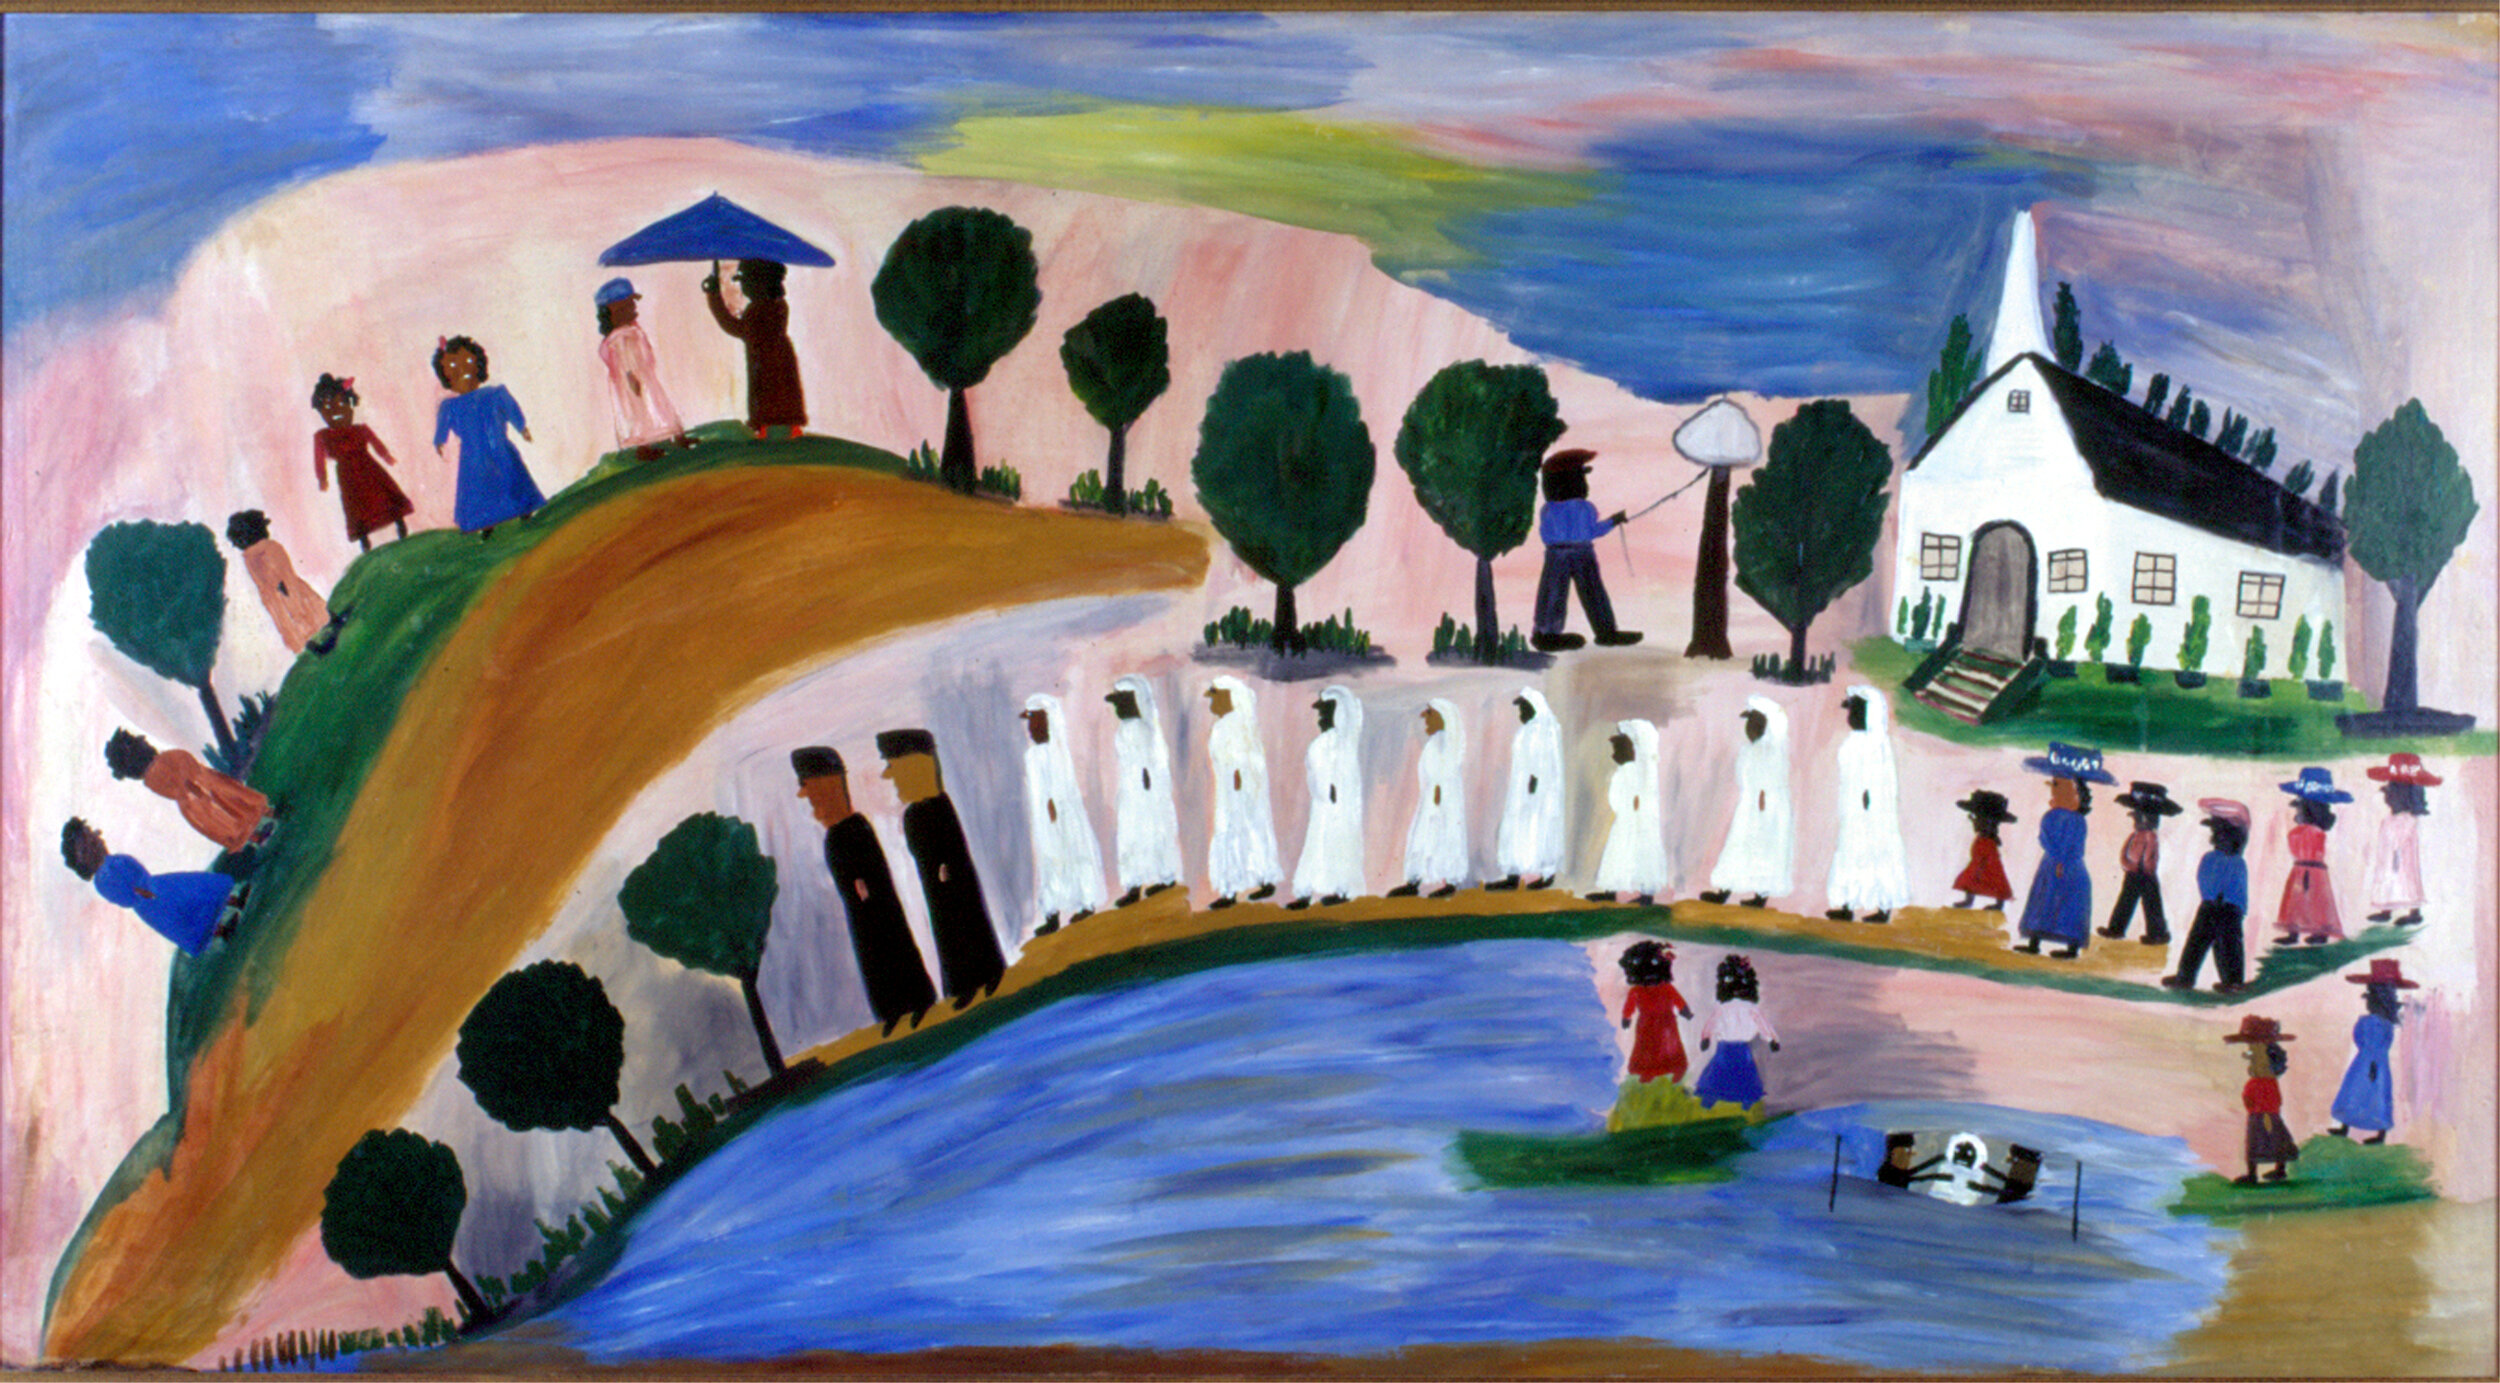 Panorama of Baptism on Cane River by Clementine Hunter, 1945